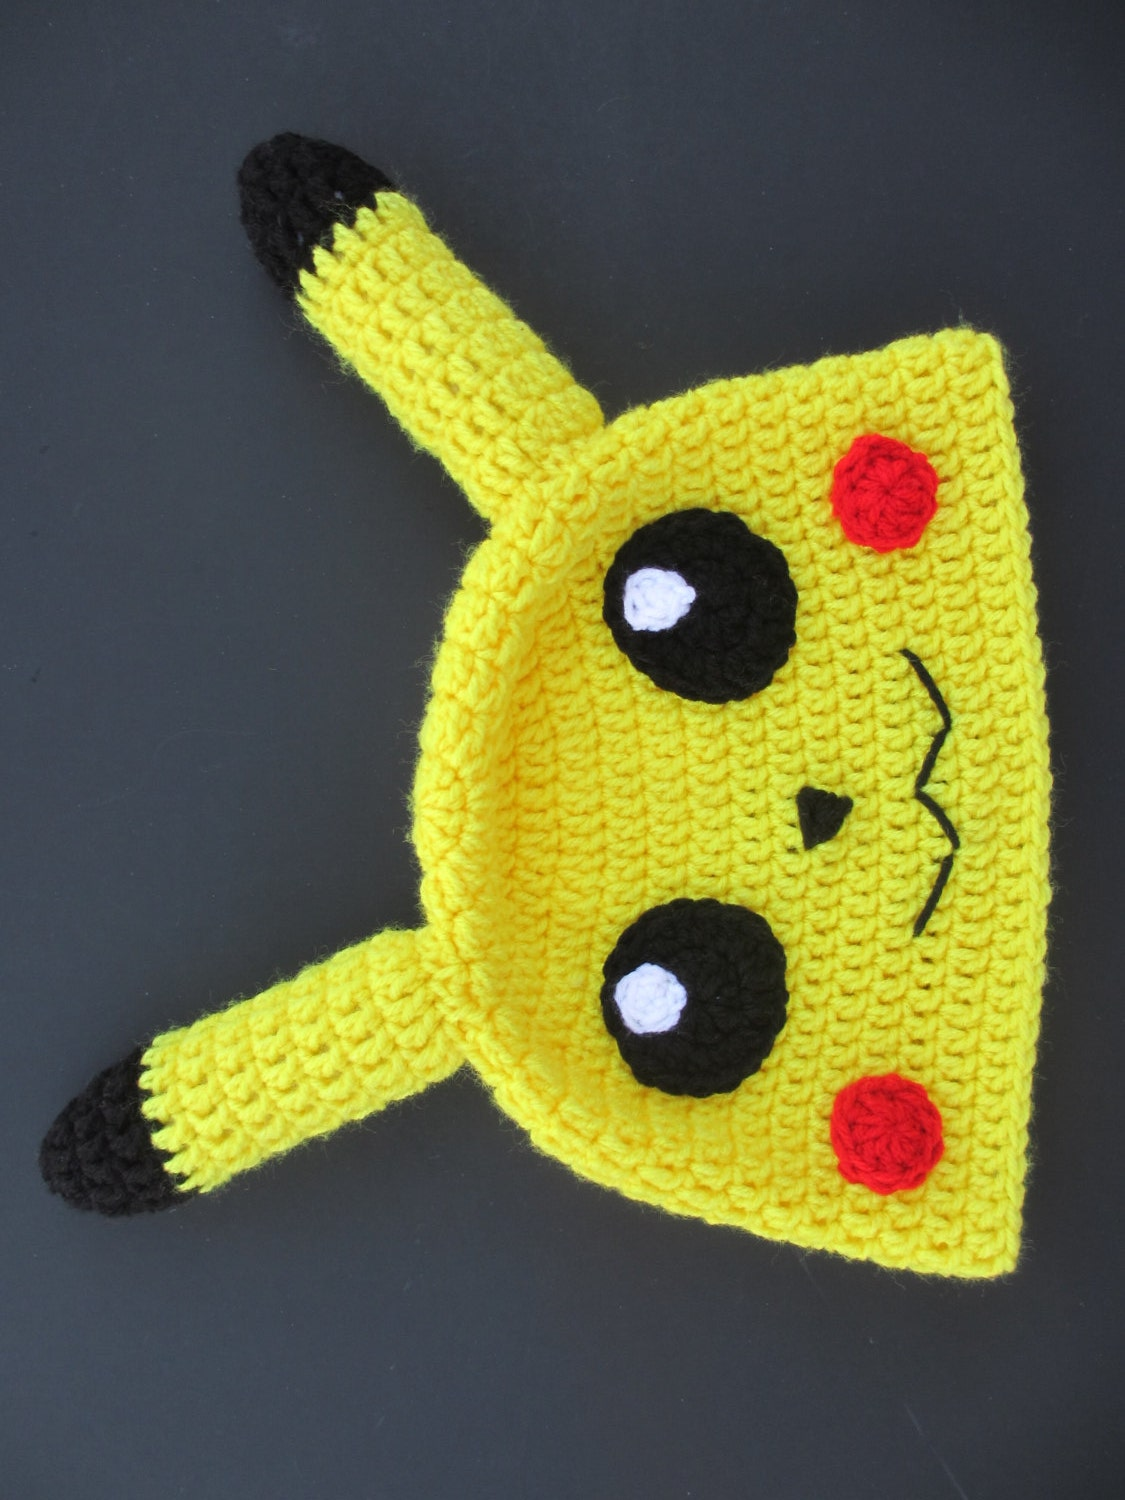 Knitted Pikachu Pattern : Crocheted Pikachu Hat